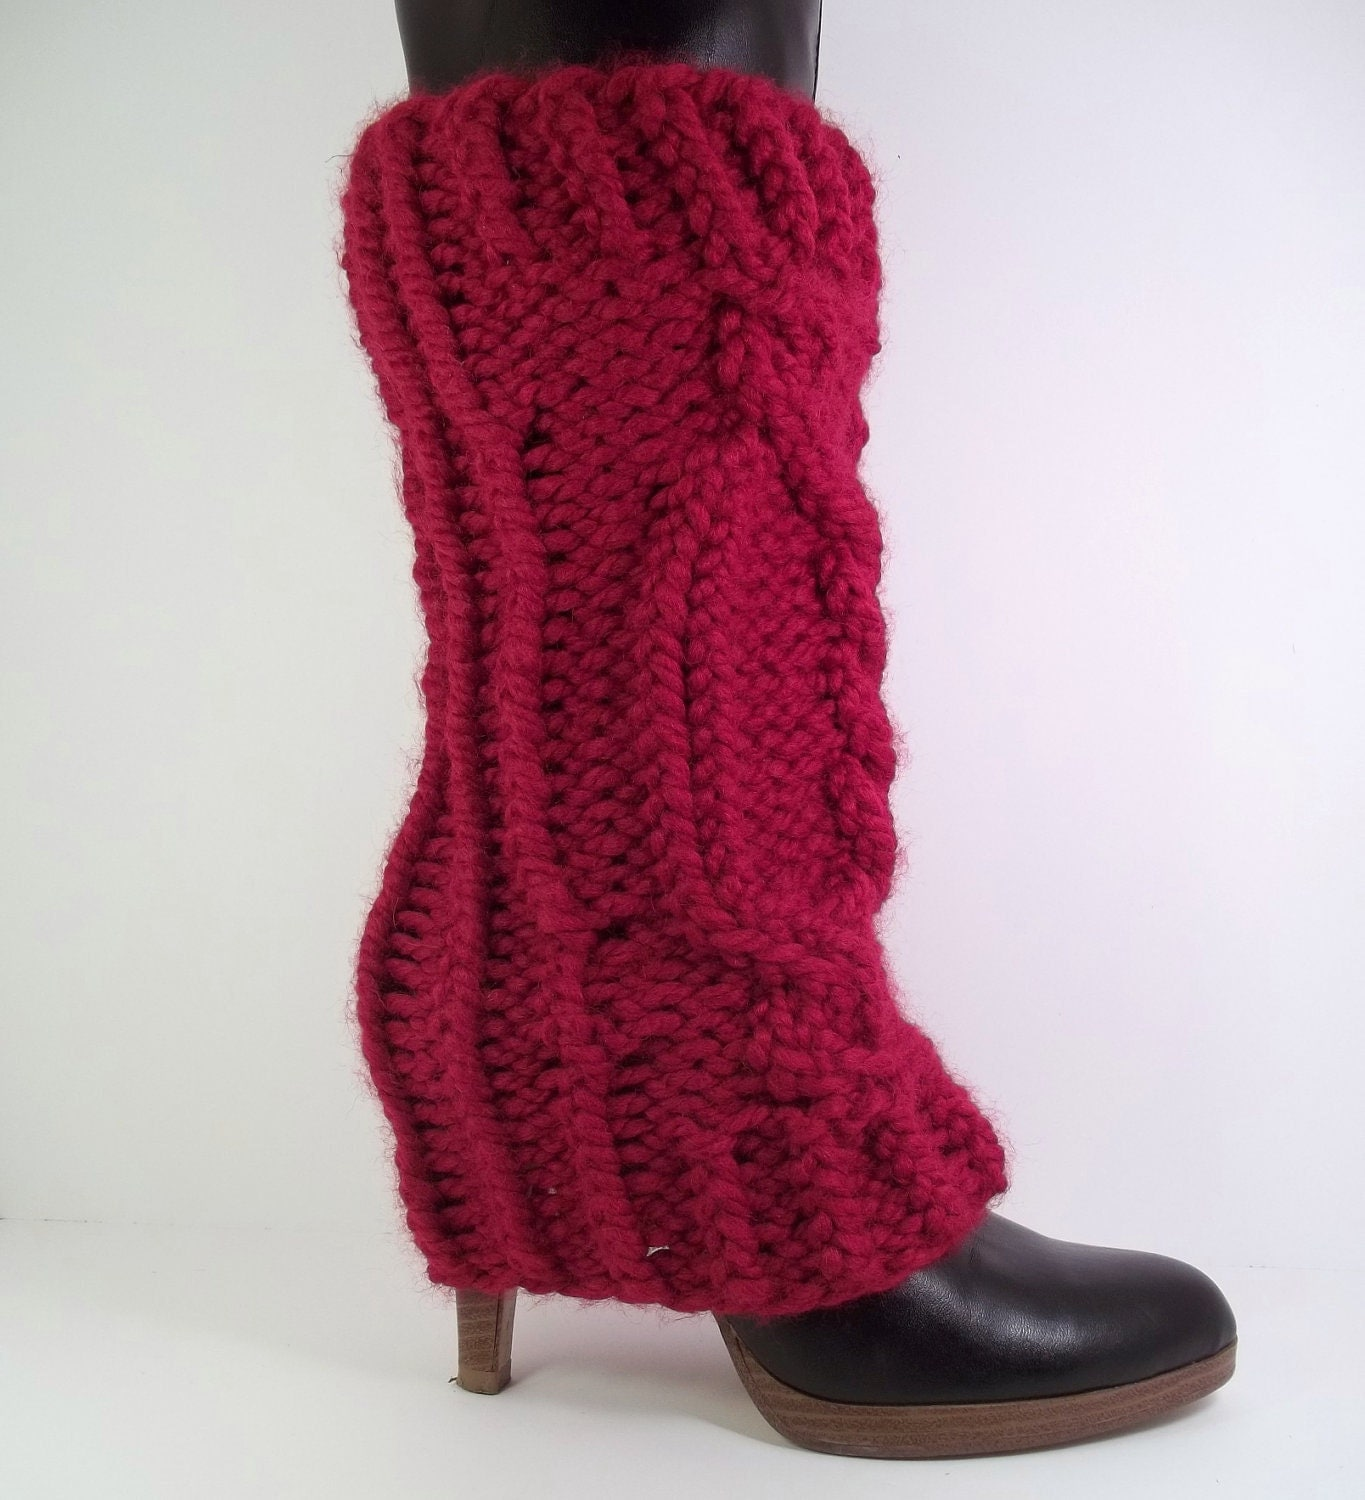 Free Knitting Pattern Ribbed Leg Warmers : LEG WARMERS KNITTING PATTERNS - Patterns 2013